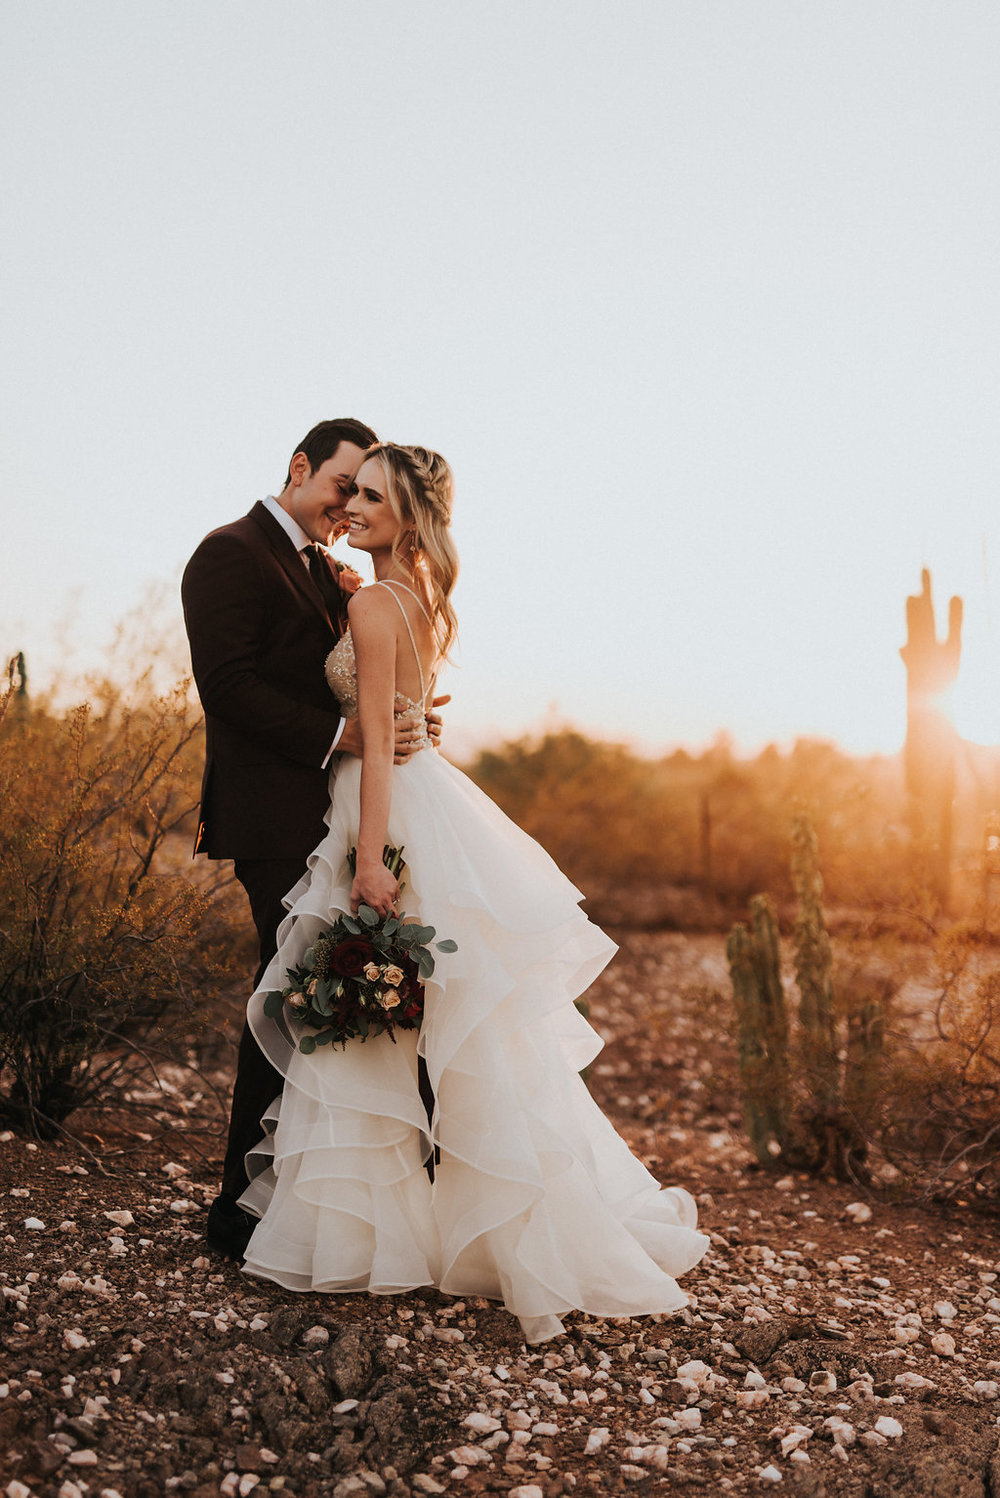 A Colorful Arizona Sunset Wedding at the Desert Botanical Gardens - Tremaine Ranch Arizona Wedding Event Vintage Furniture Tableware Specialty Rentals with Jonnie and Garrett39.jpg